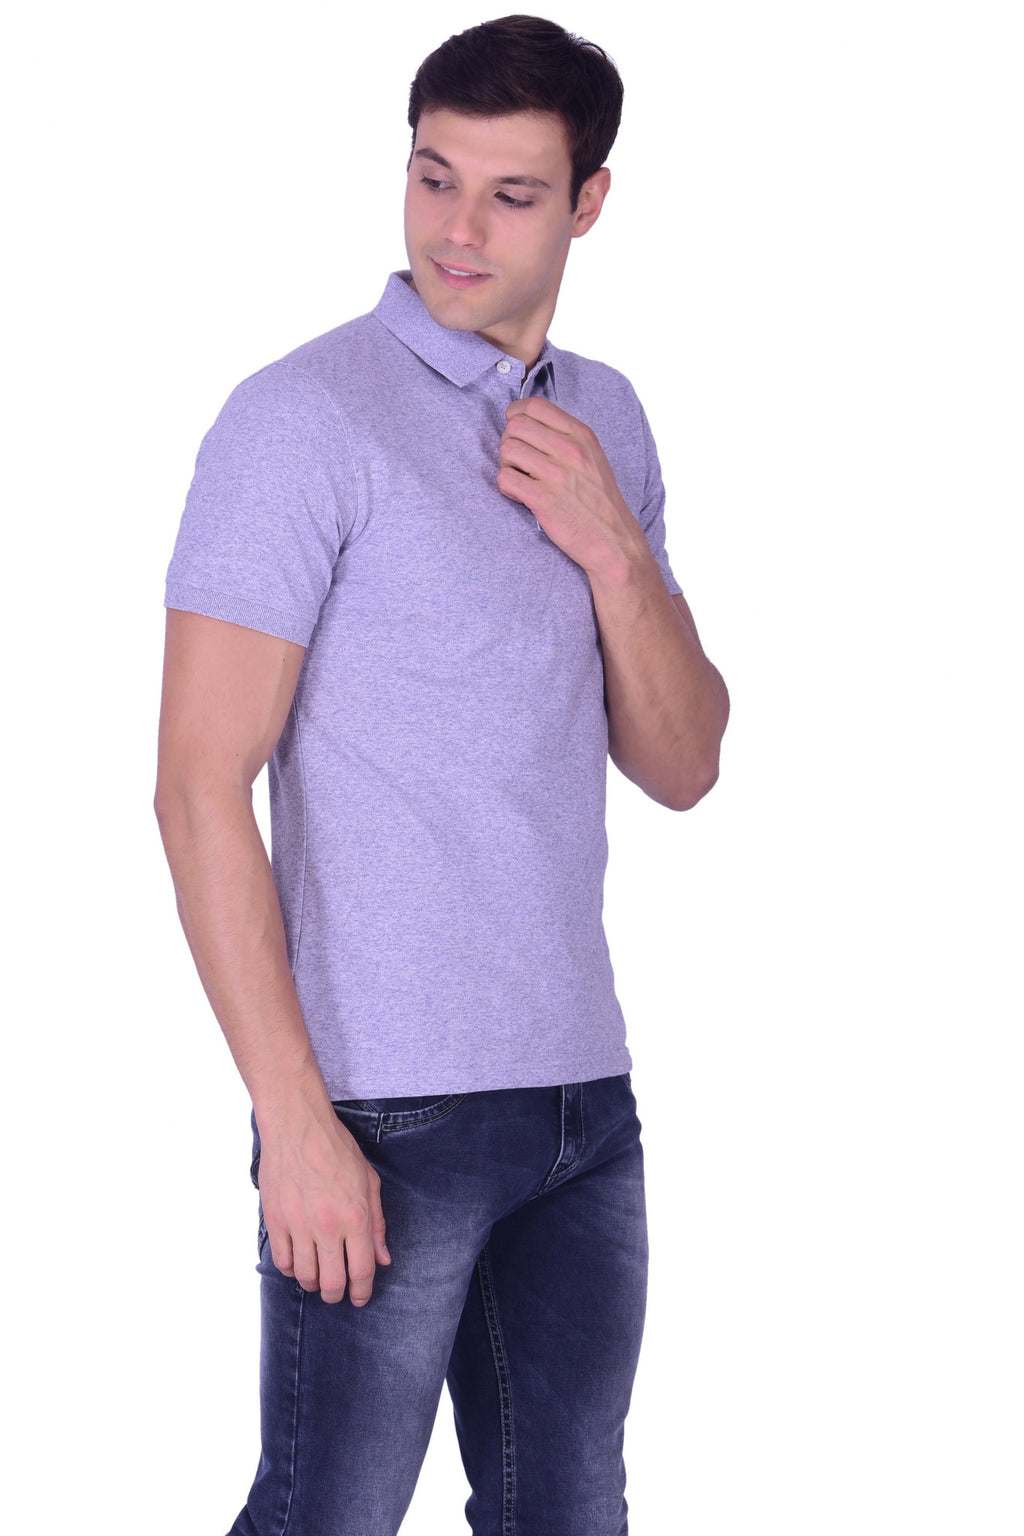 Hoffmen Men's Cotton T-Shirt FA 1072